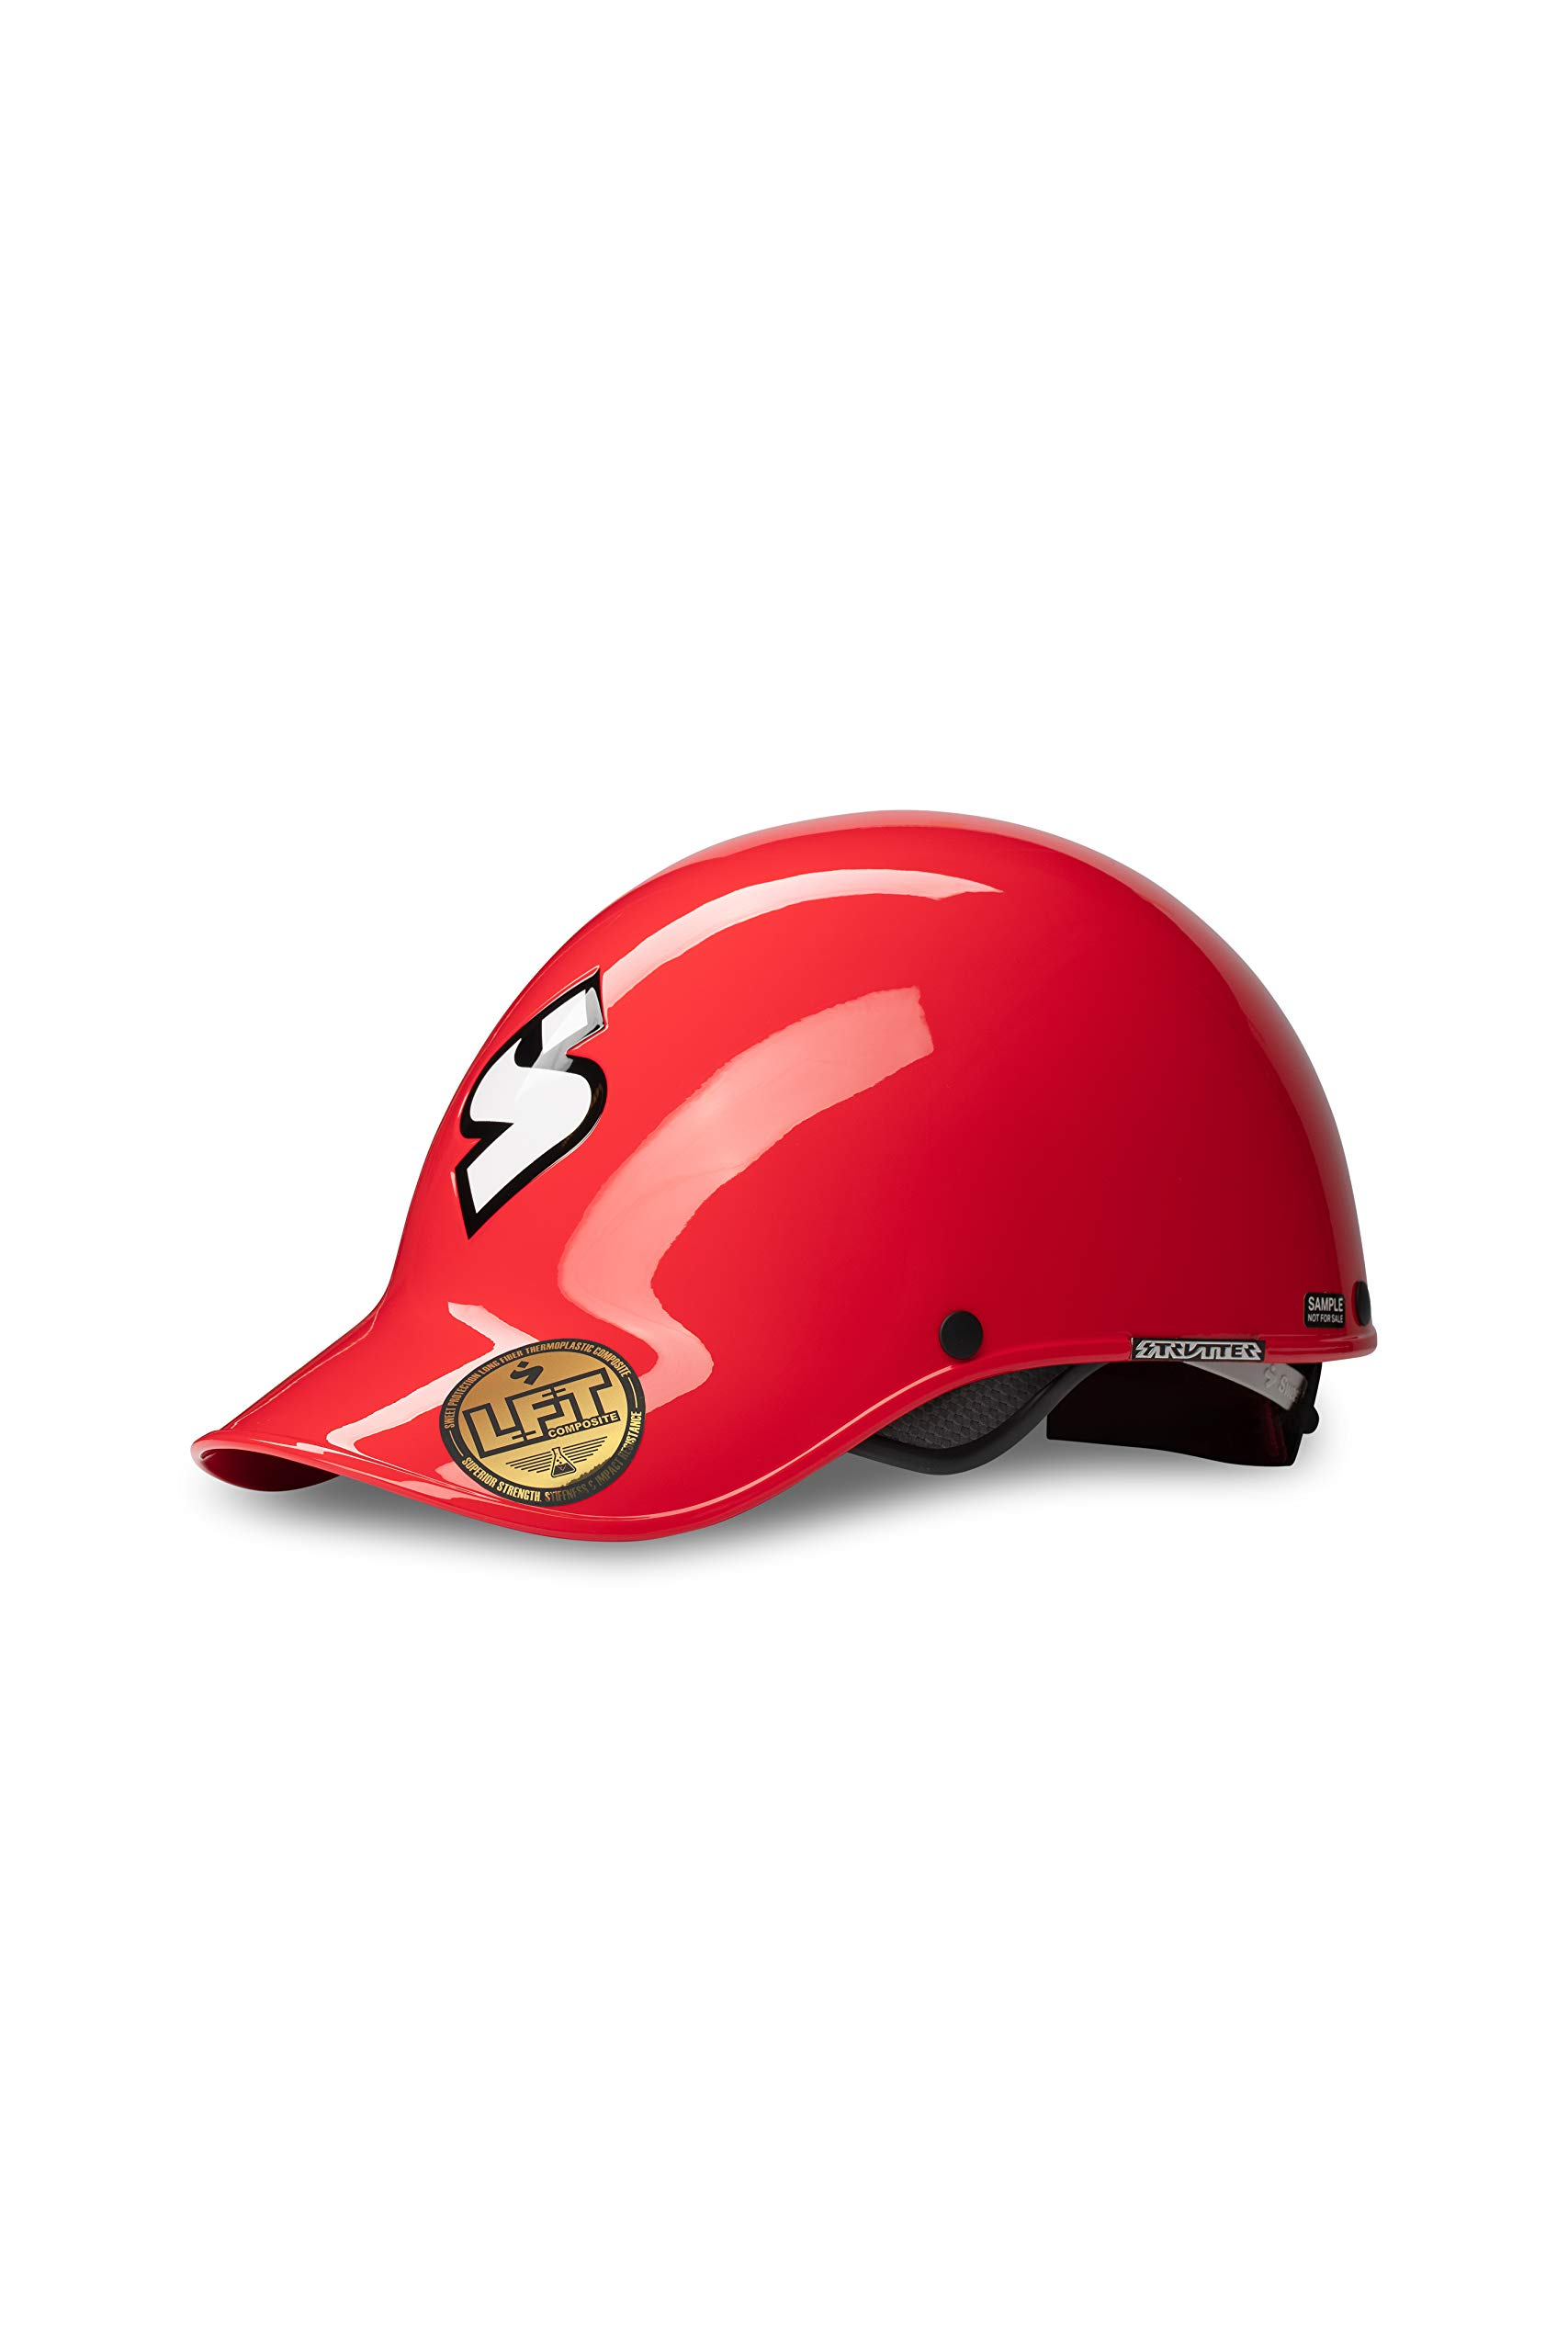 Sweet Protection Strutter Paddle Helmet, Scorch Red, ML by Sweet Protection